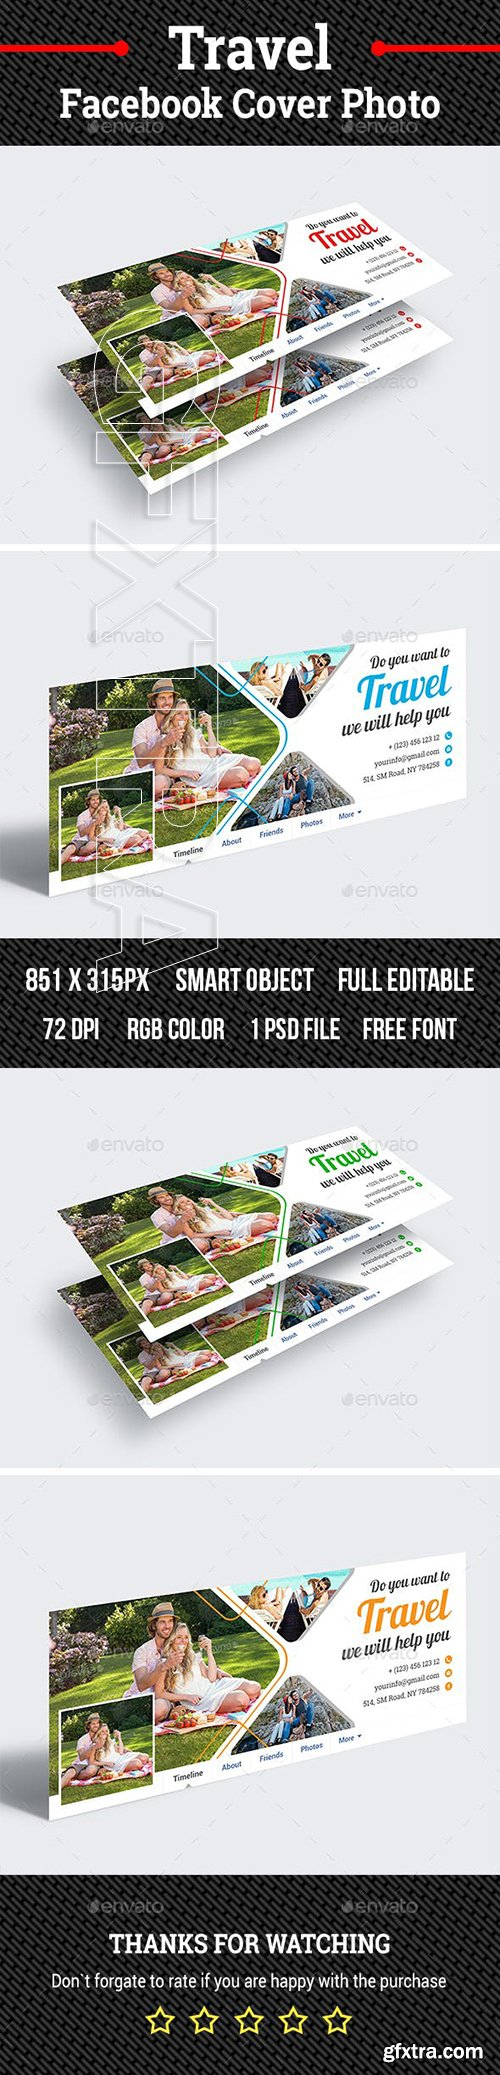 GraphicRiver - Travel Facebook Cover Photo 23095207